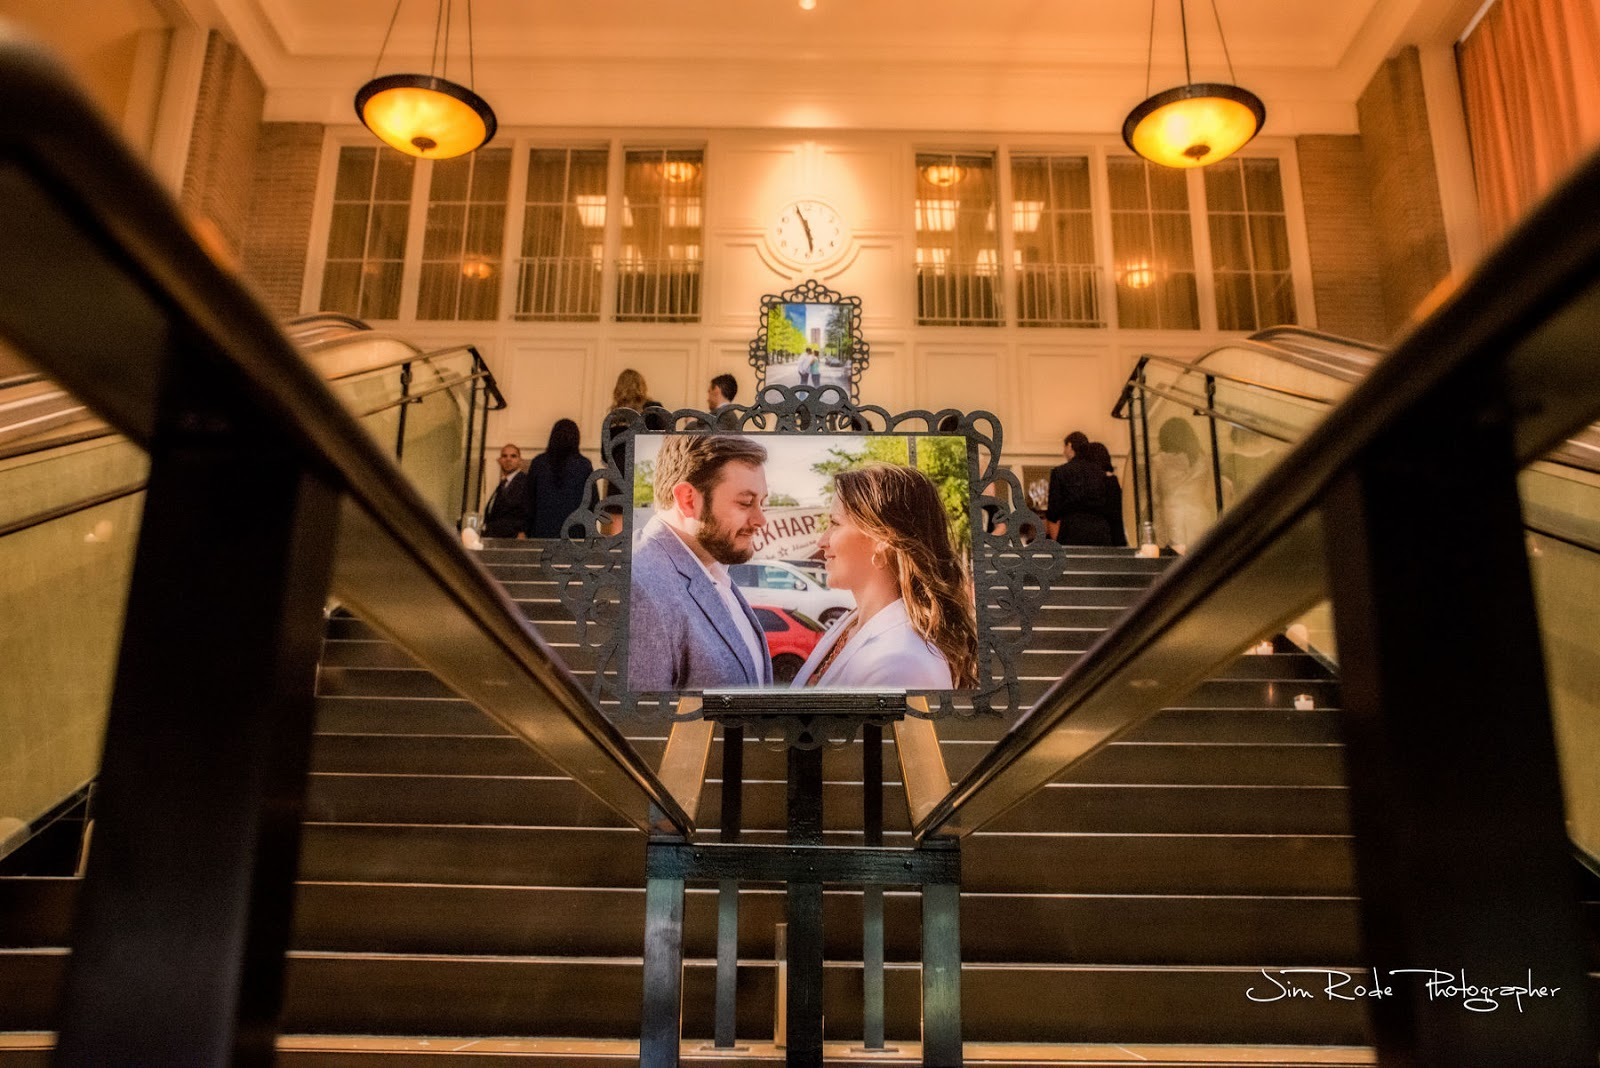 We arranged a series of photos on the staircase for the wedding